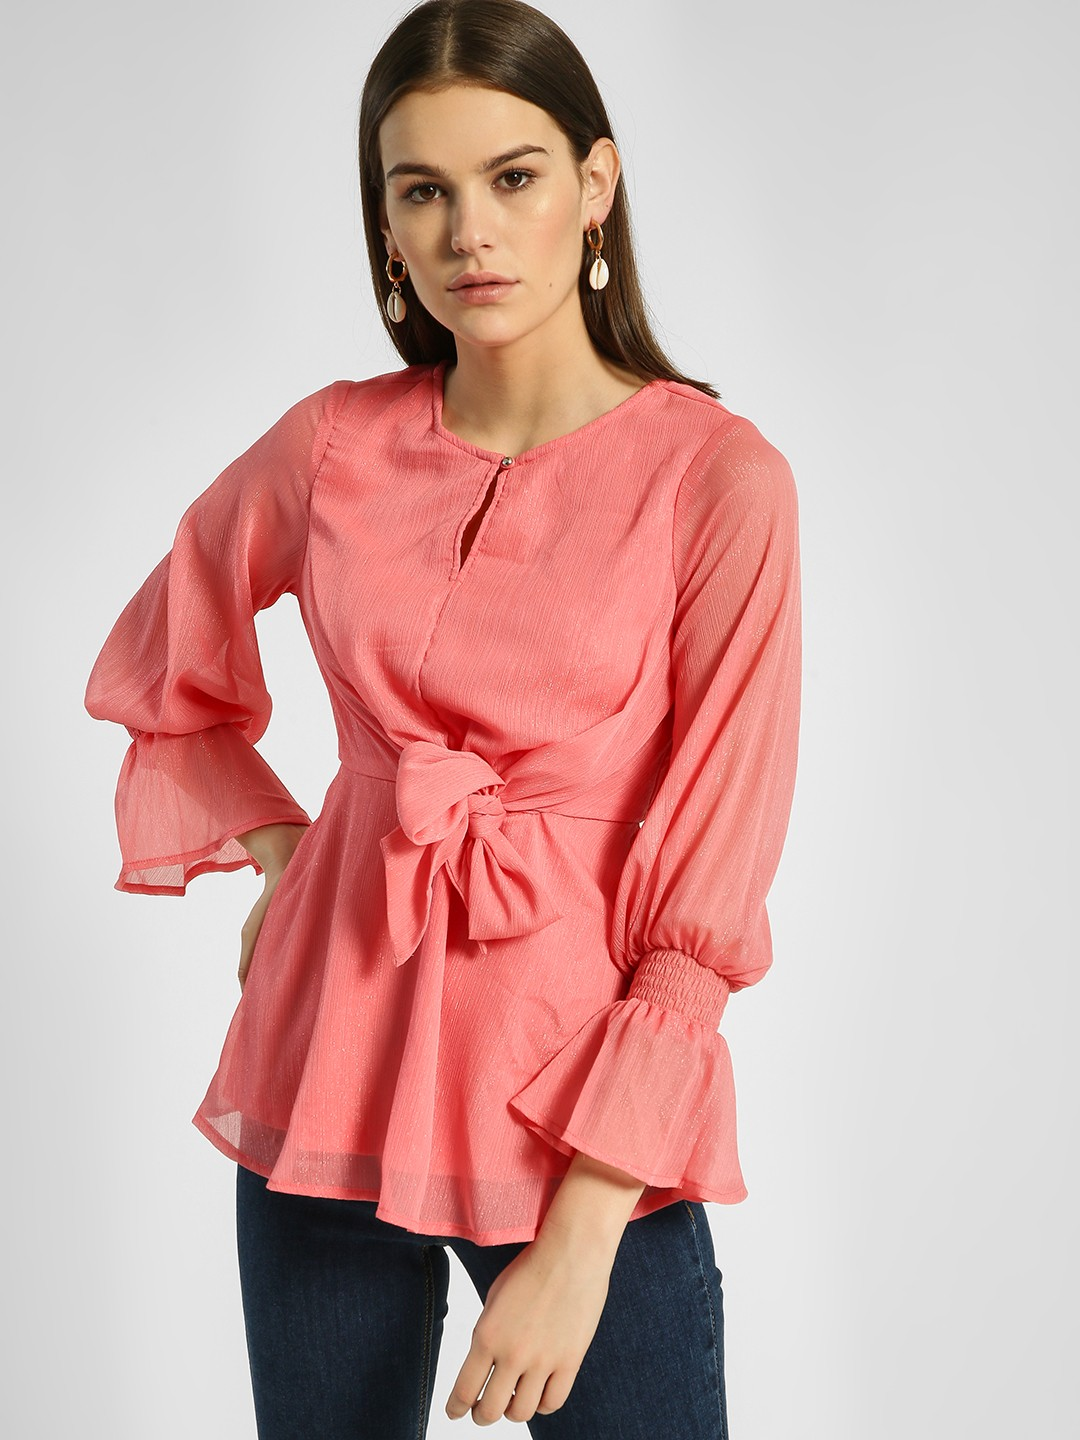 HEY Pink Shimmer Front Tie-Knot Blouse 1